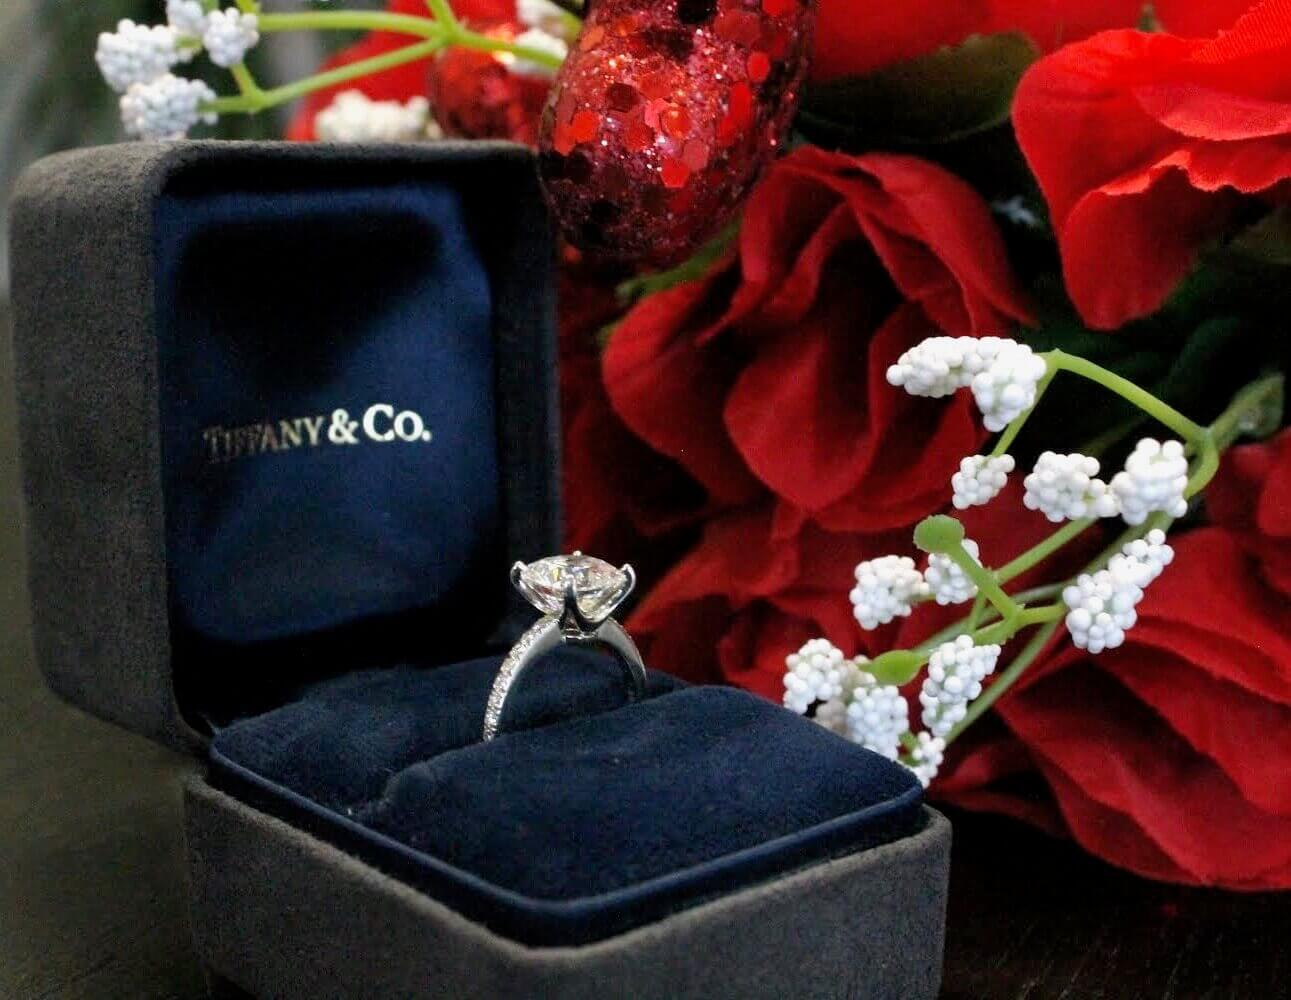 What's better Cartier or Tiffany & Co jewelry?